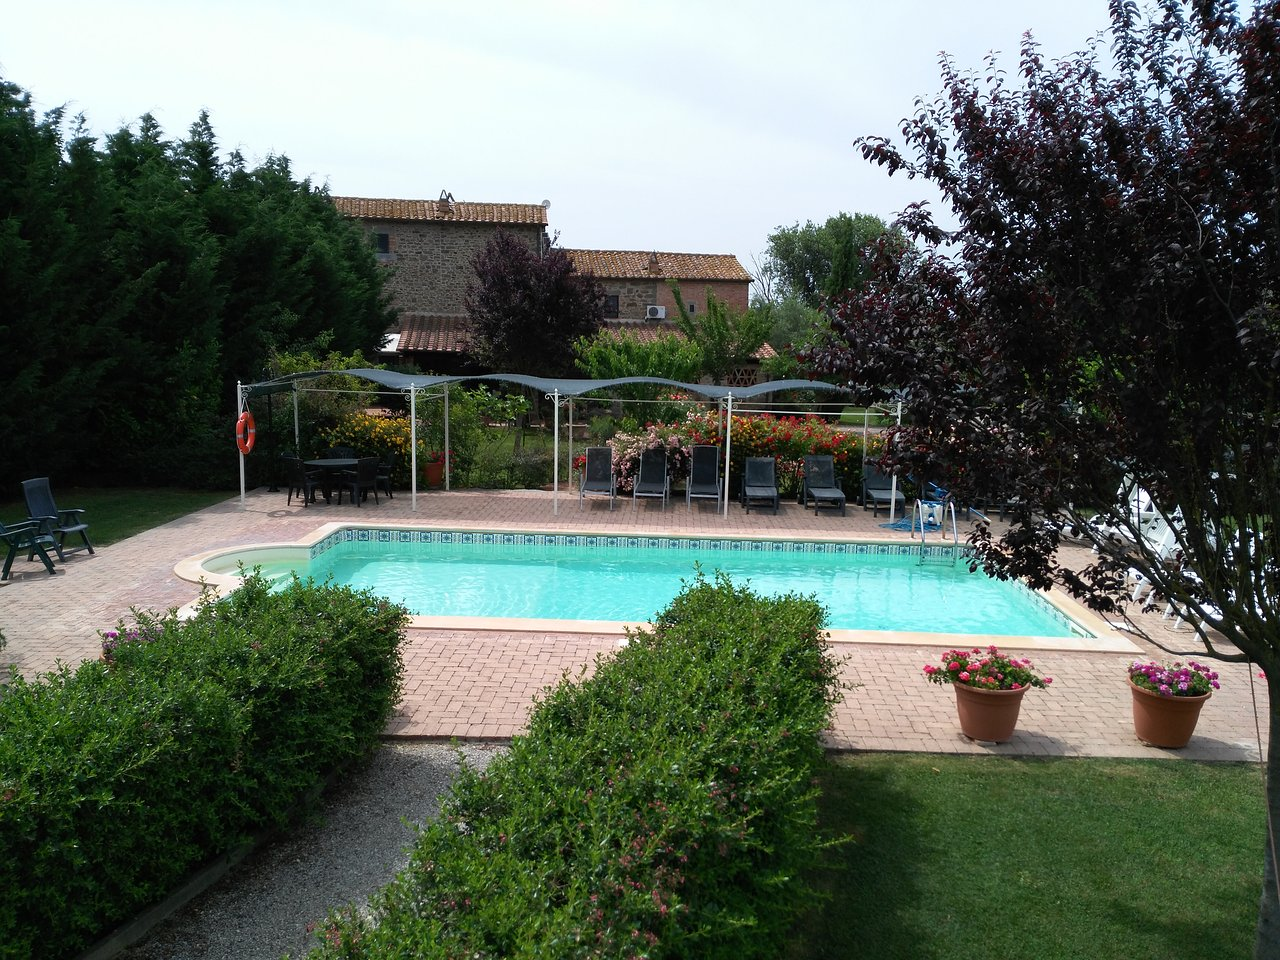 Villa Toscana Villa Toscana La Mucchia Updated 2019 Prices Lodge Reviews